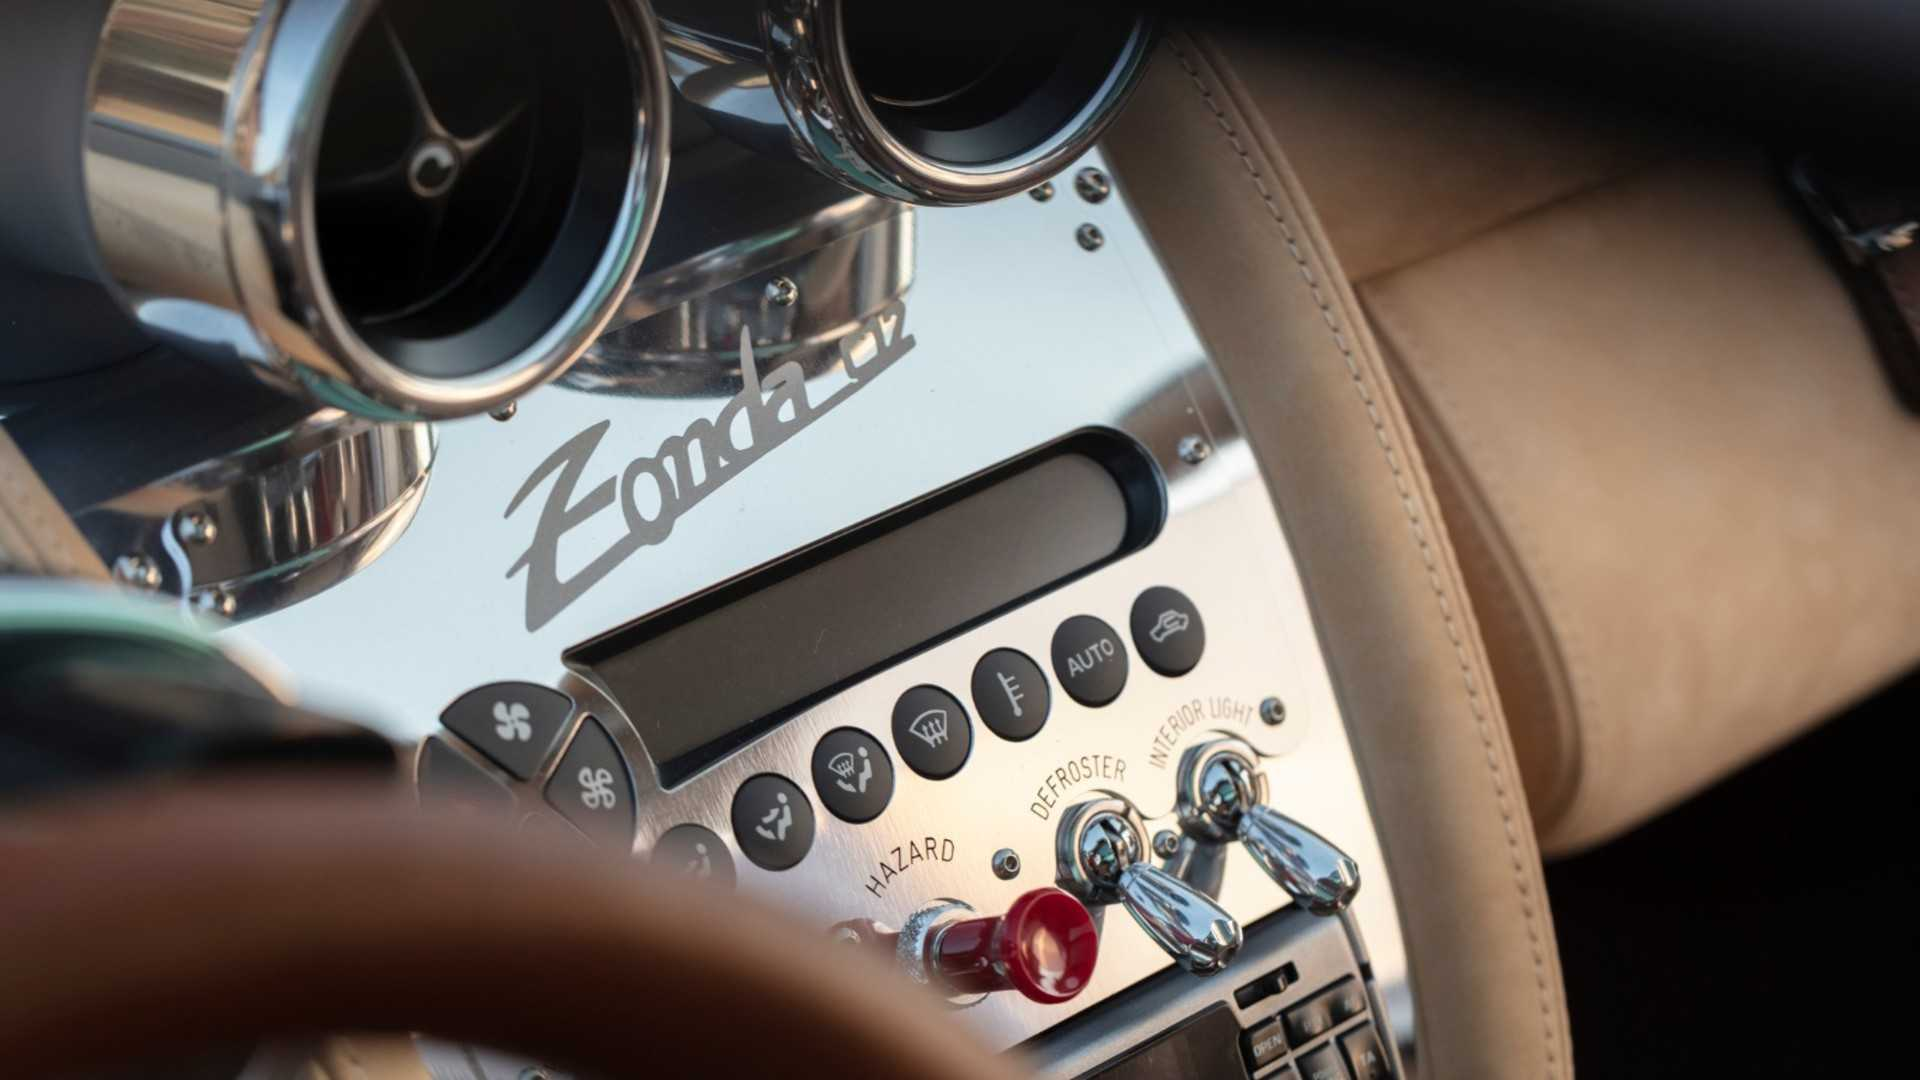 pagani restores first zonda for 20th anniversary | motorious